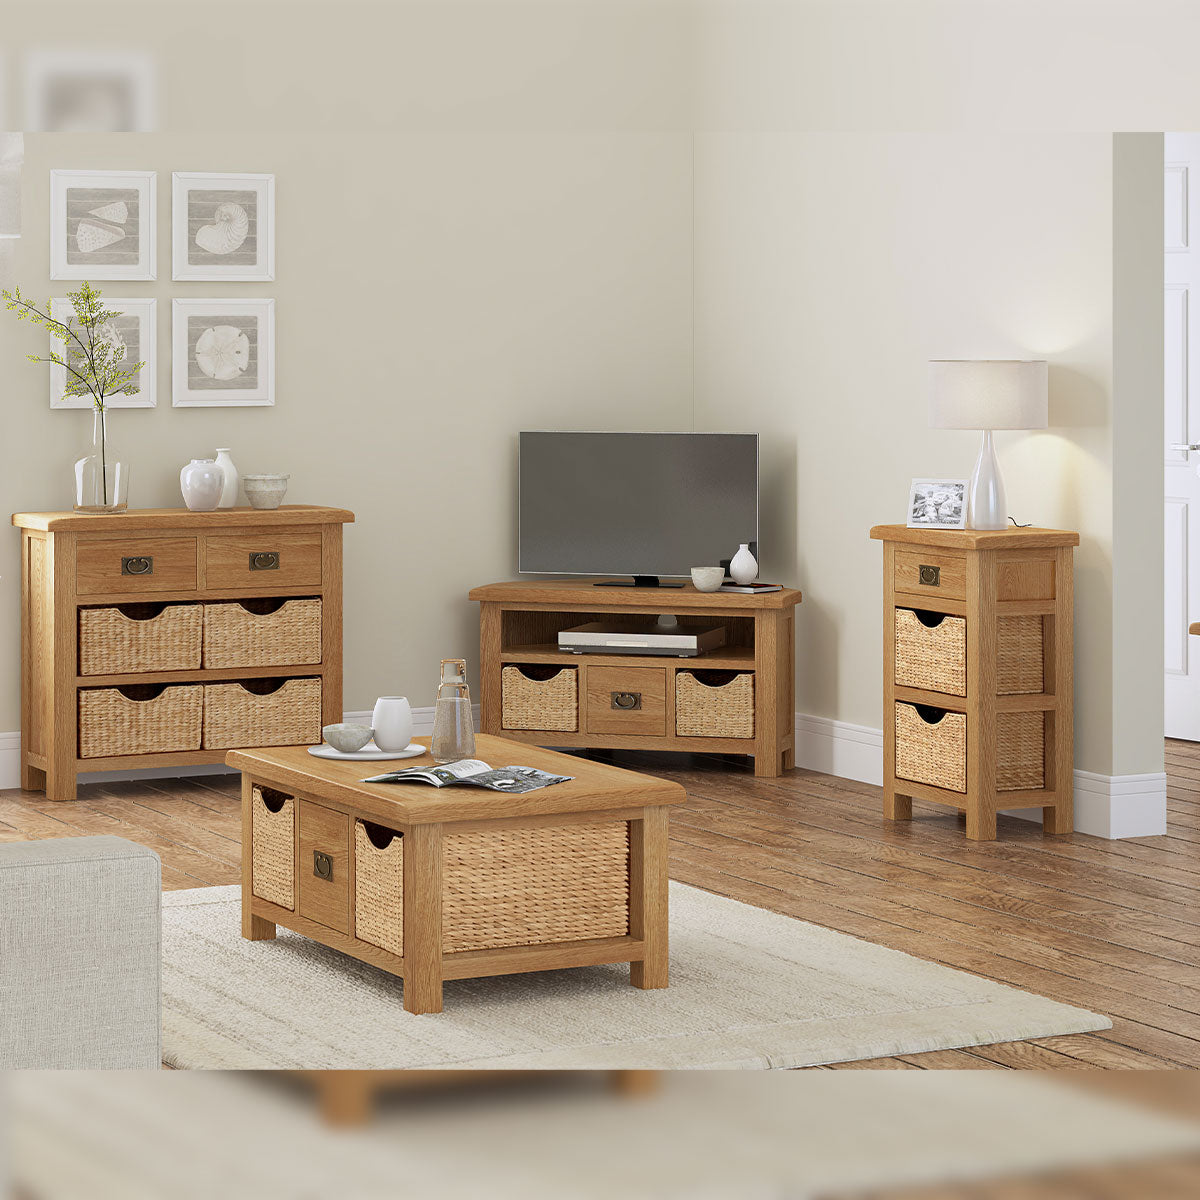 Salisbury Sideboard With Baskets